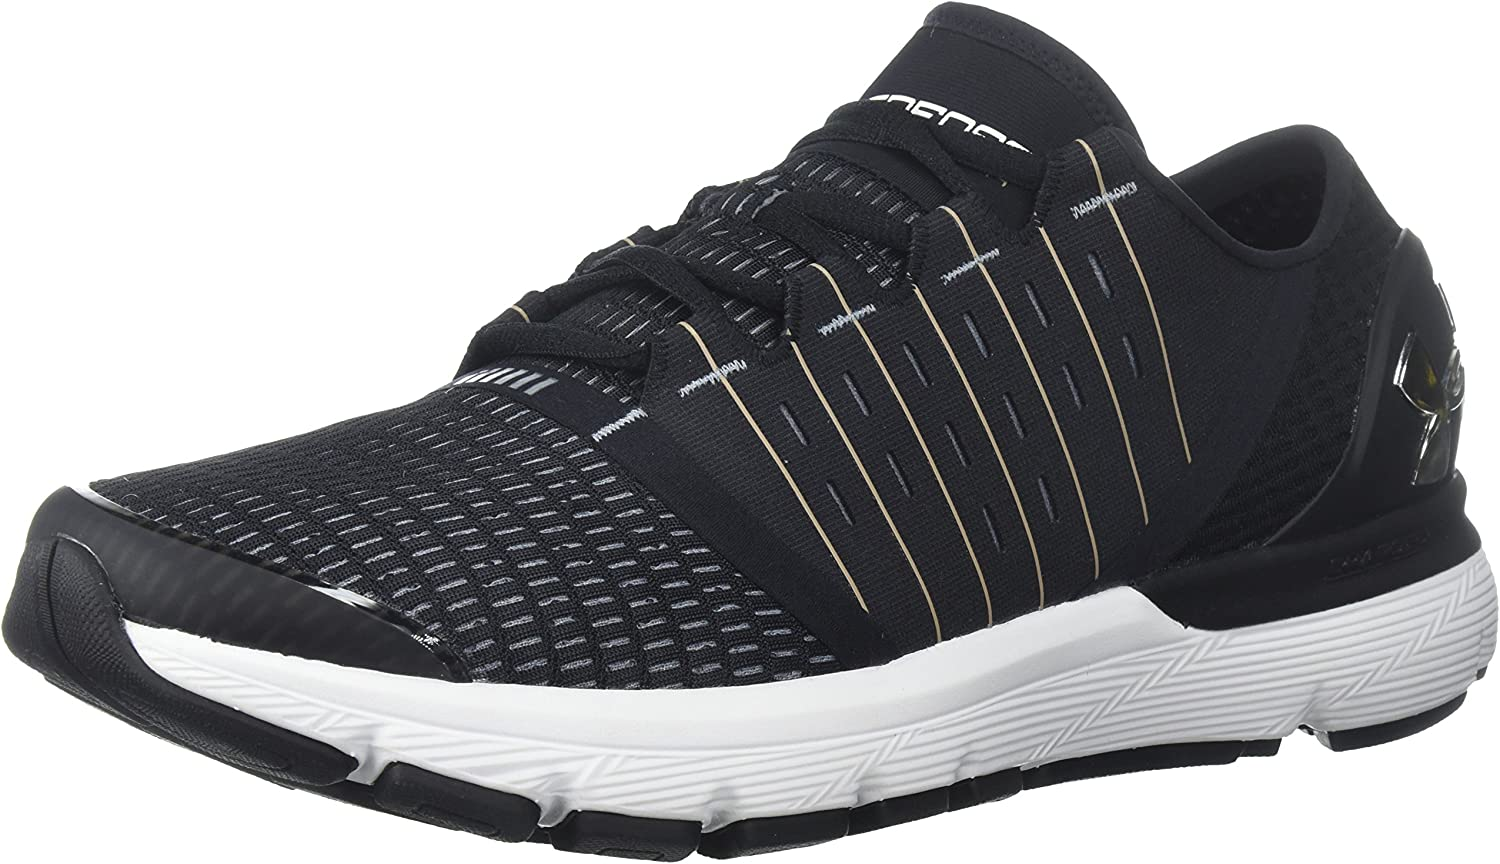 Under Armour Men s Longshot Running Shoe